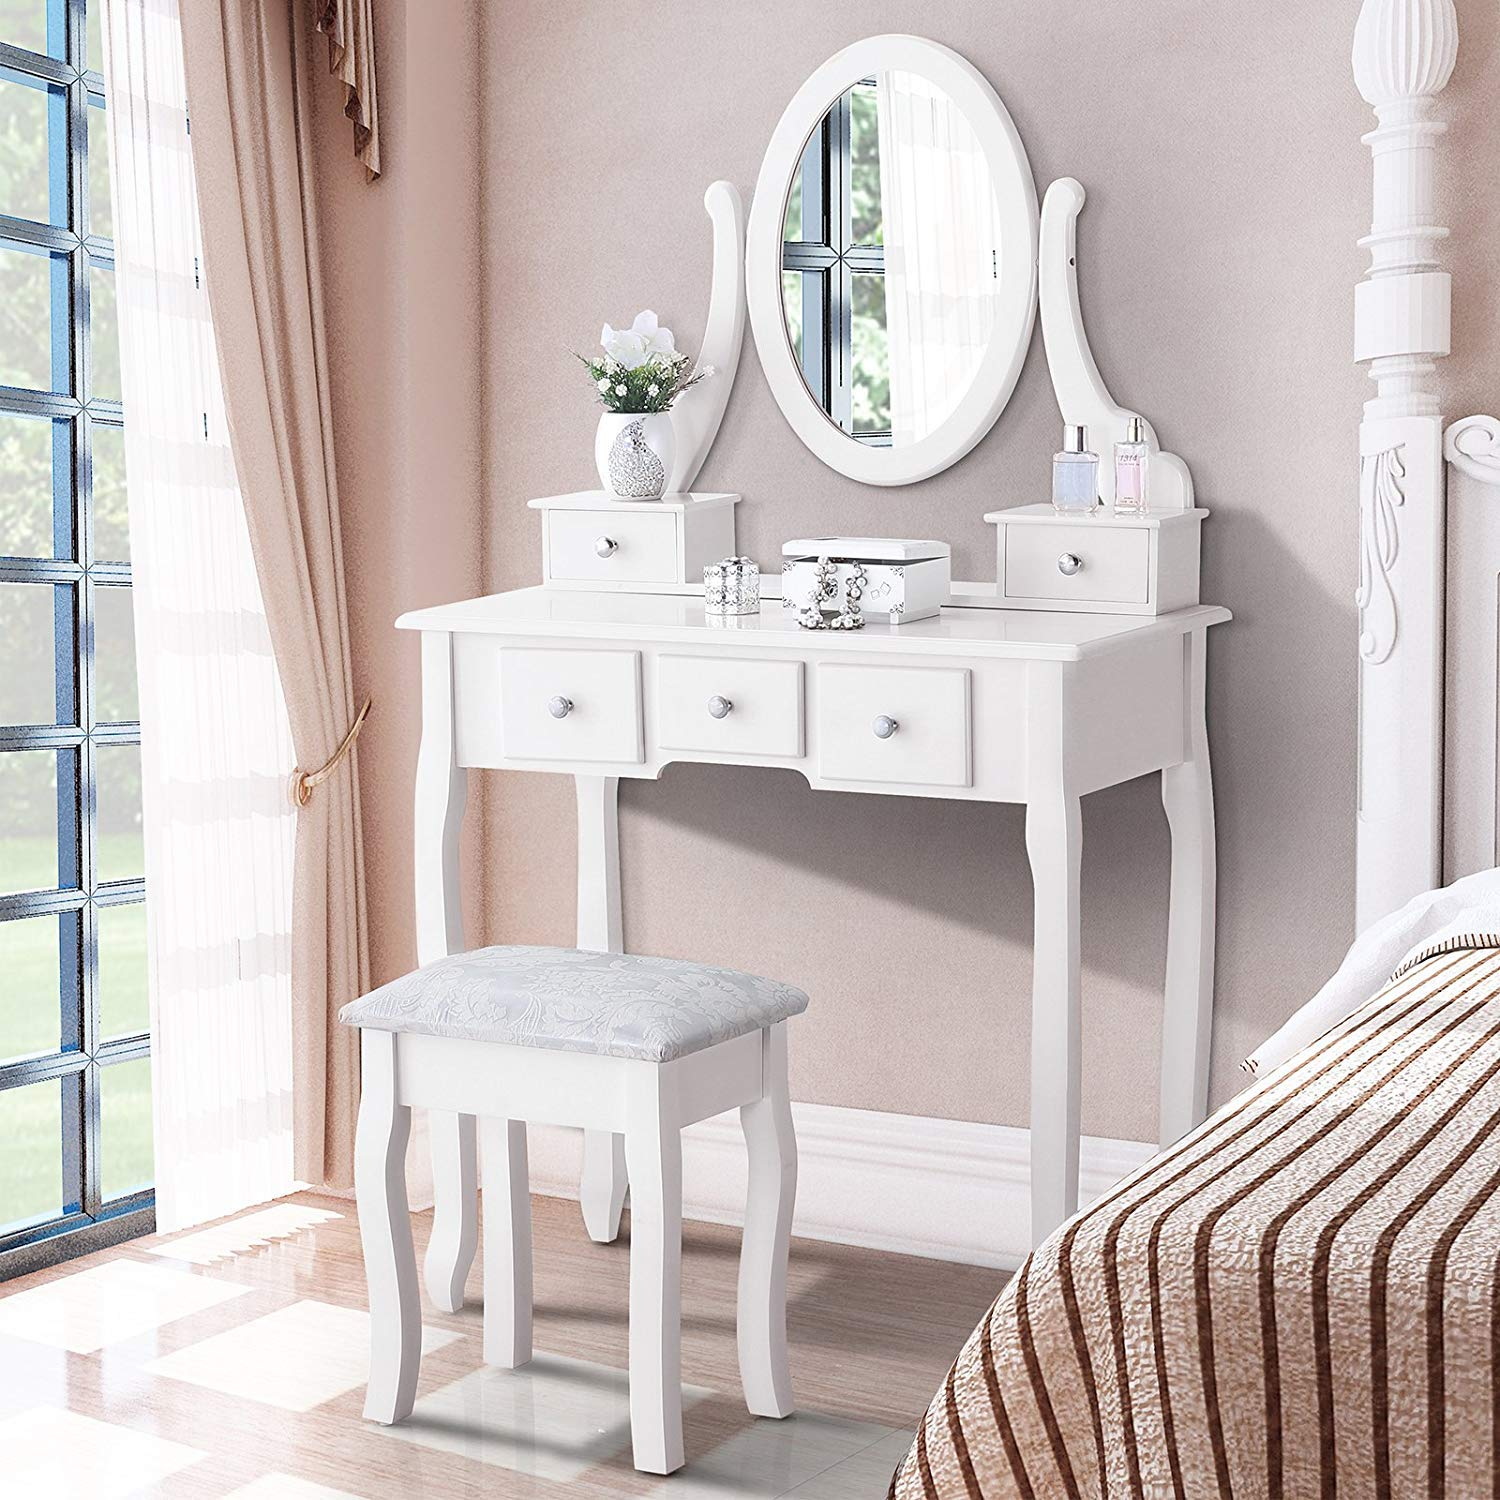 Mecor Vanity Table Oval Mirror,Makeup Vanity Set Cushioned Stool Wood Dressing Table with 5 Drawers for Girls Women Bedroom Furniture,White by mecor